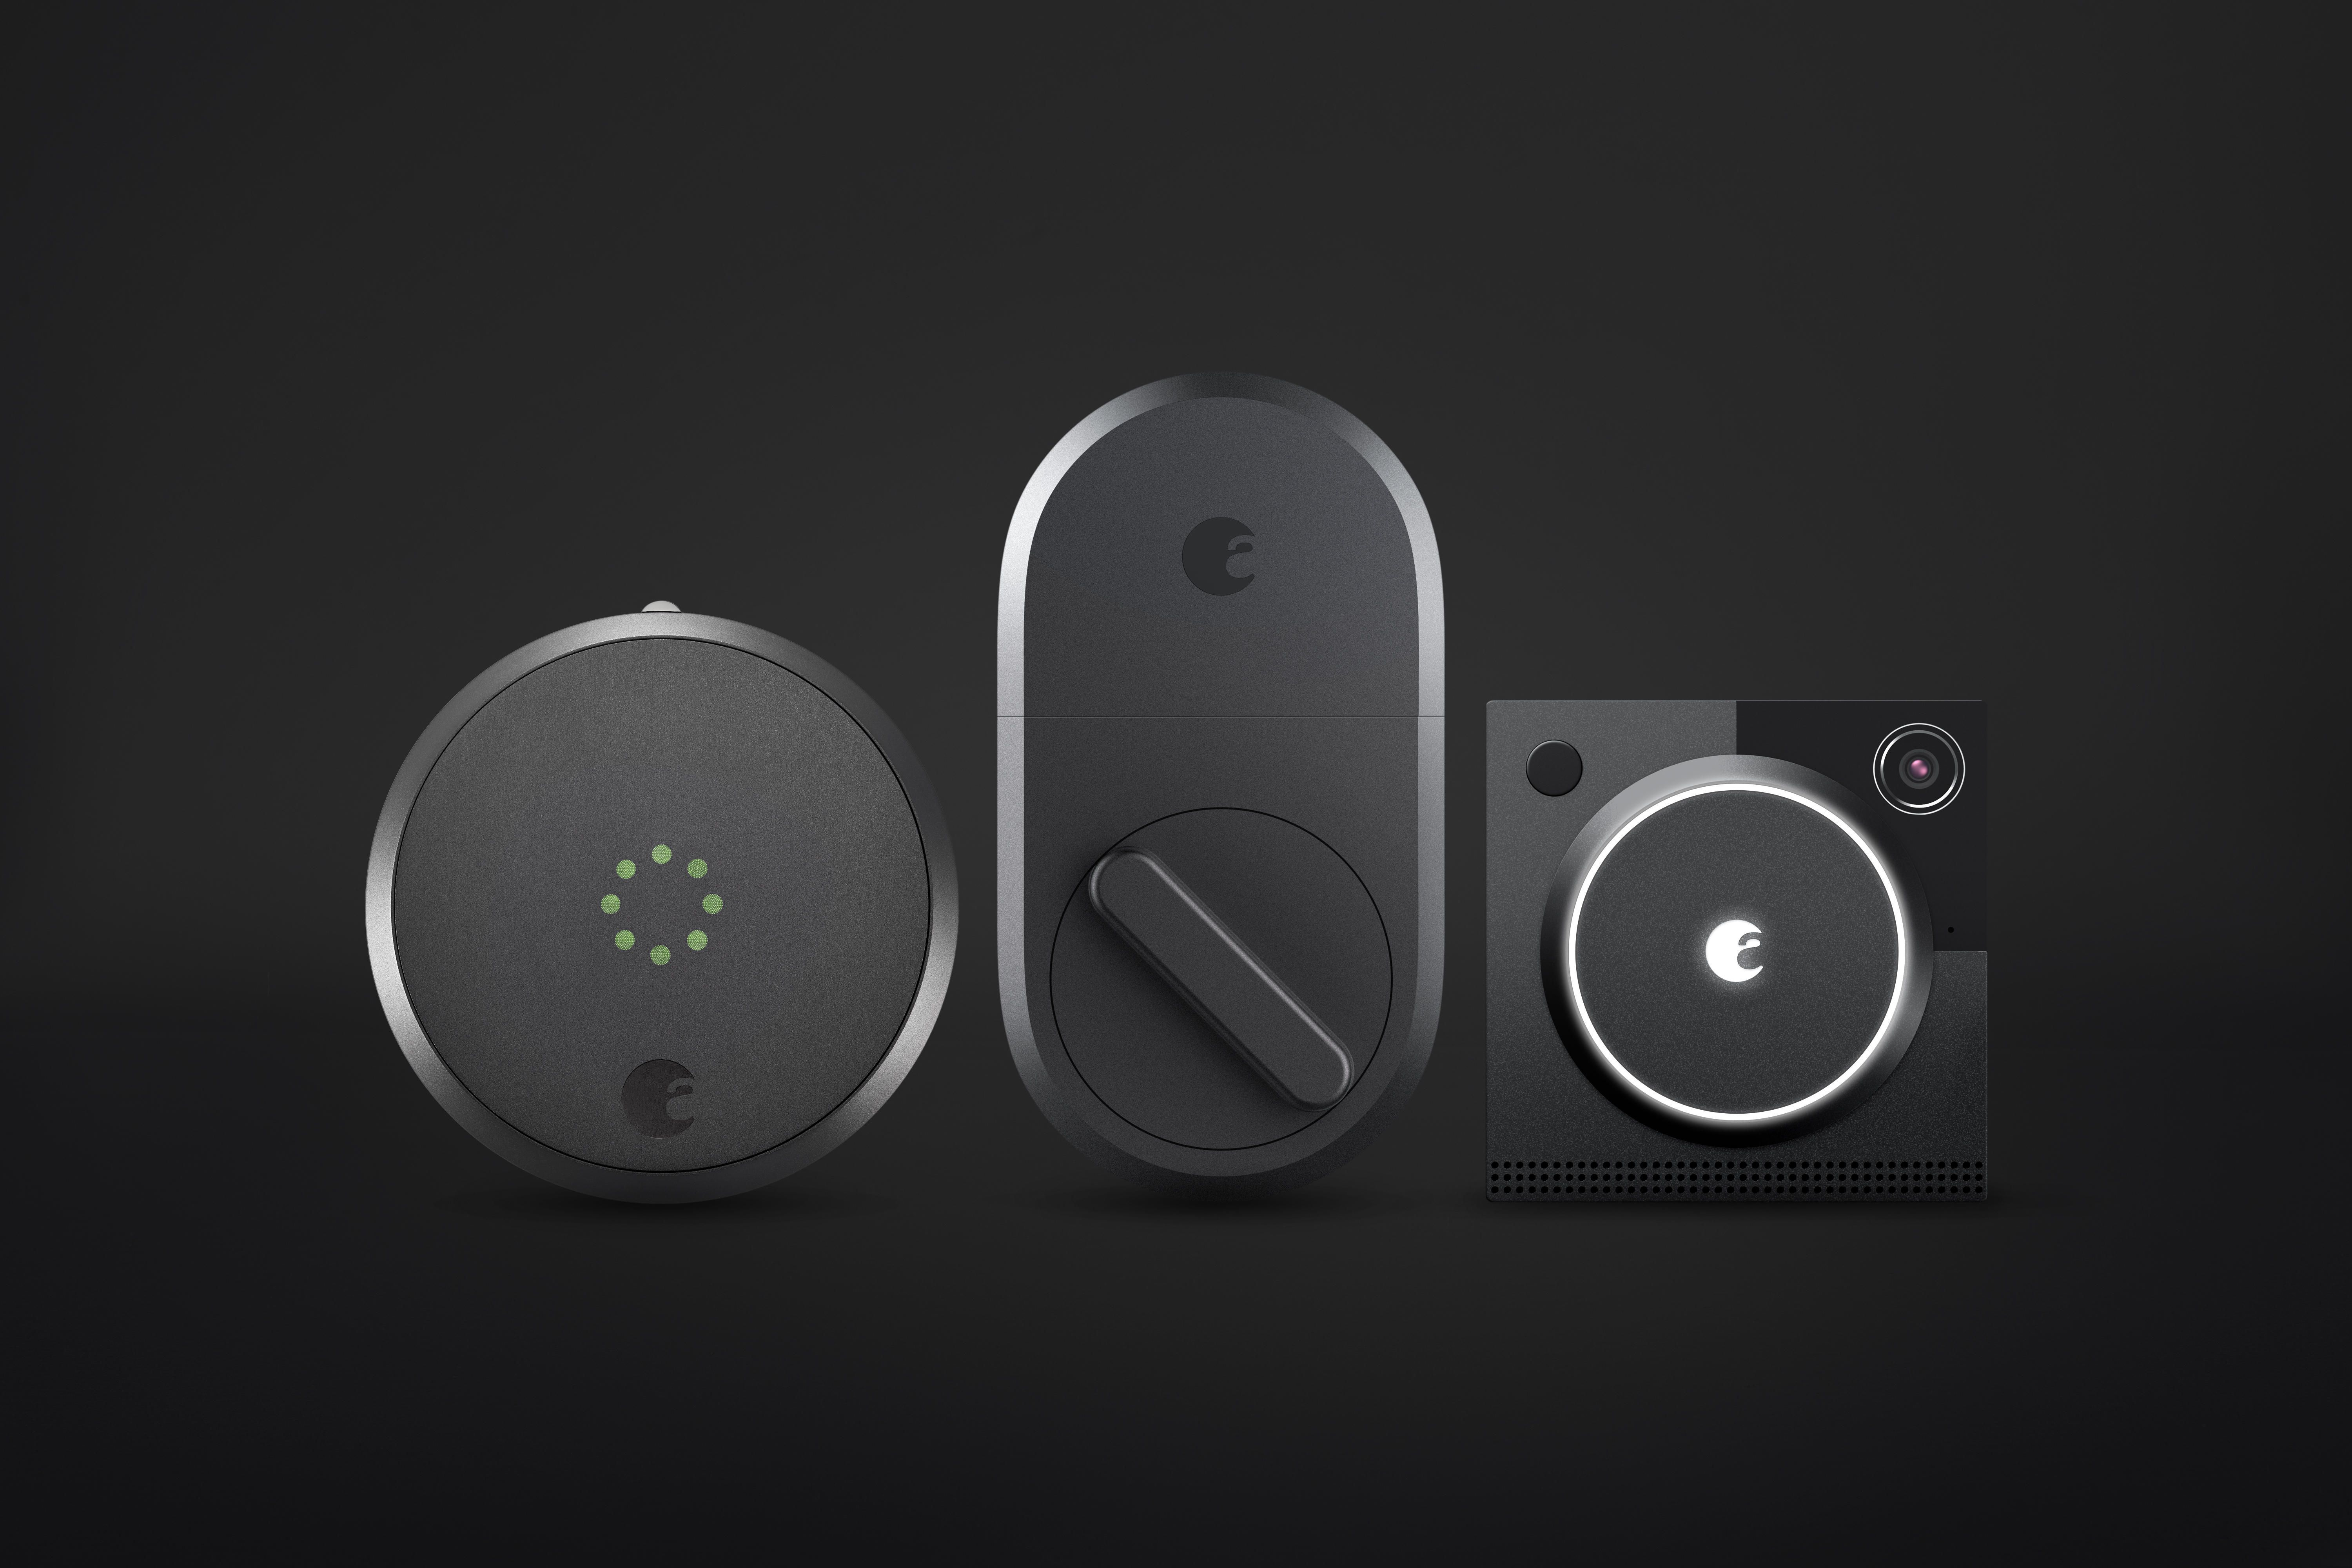 August S Smart Home Line Just Doubled In Size August Smart Lock Smart Home Security Smart Home Control